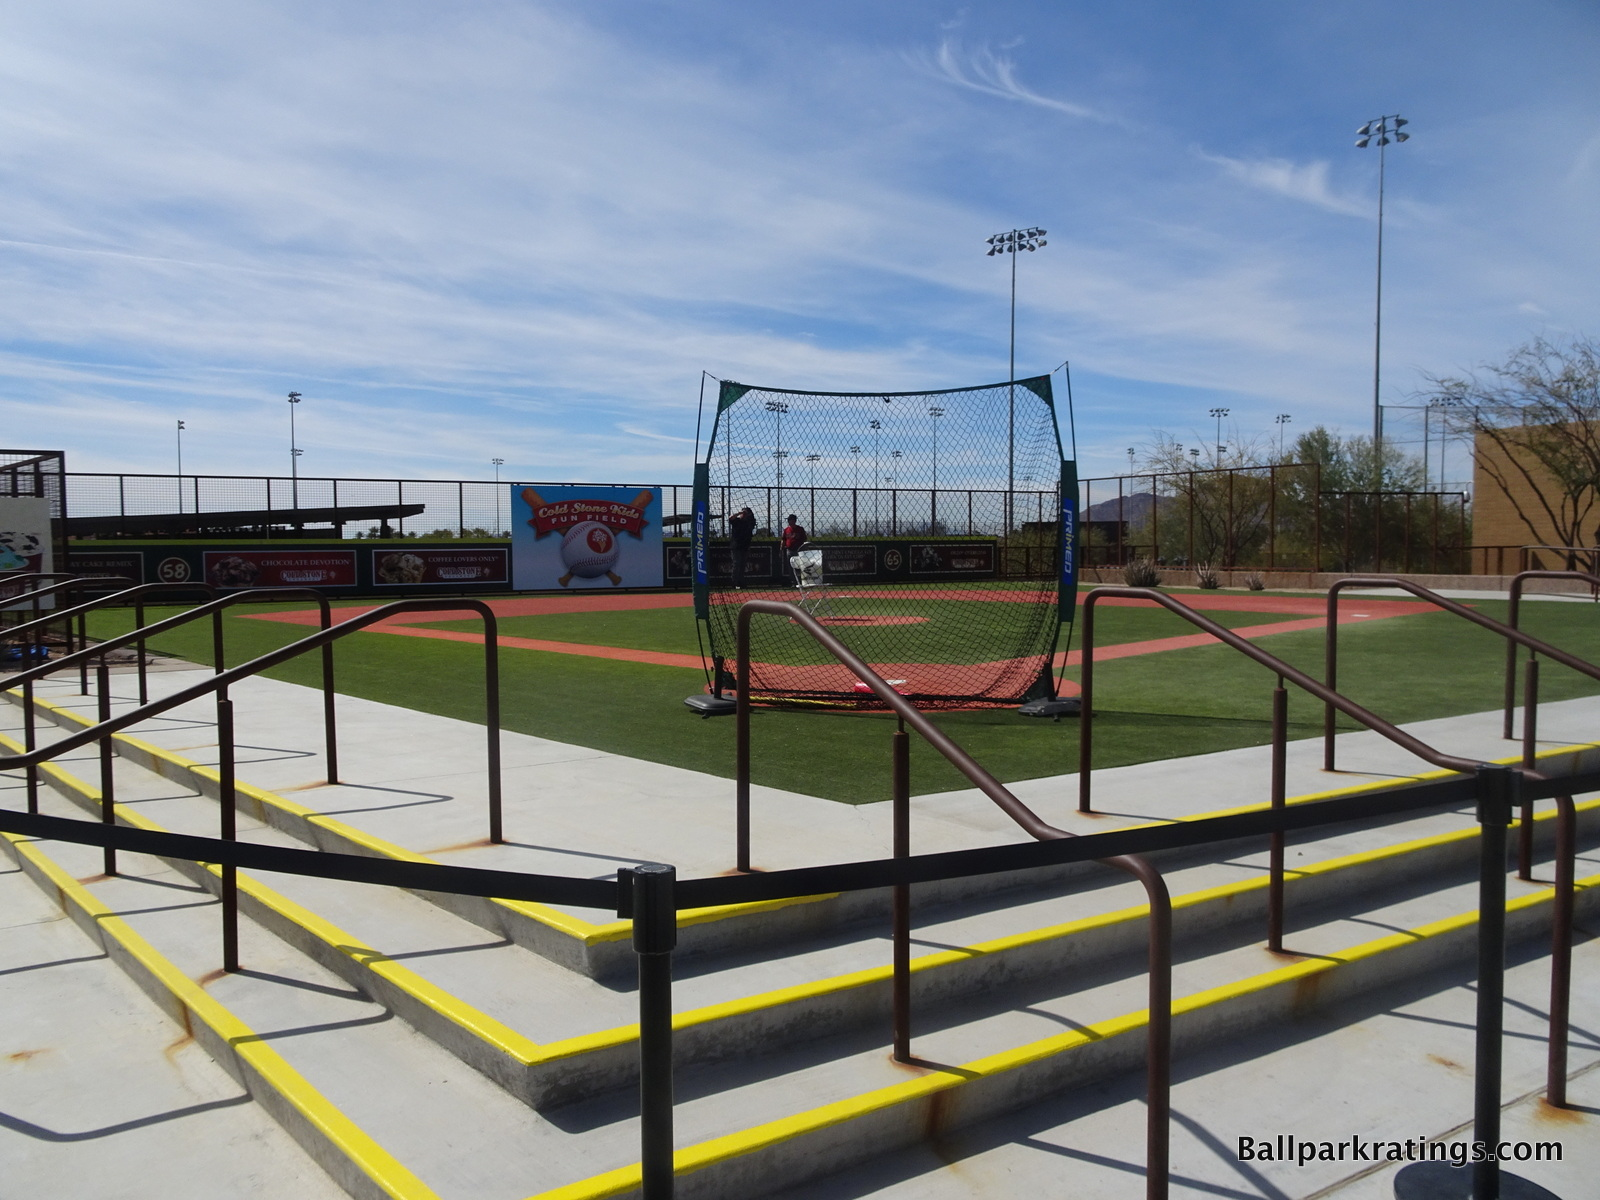 Wiffle Ball field at Salt River Fields at Talking Stick.